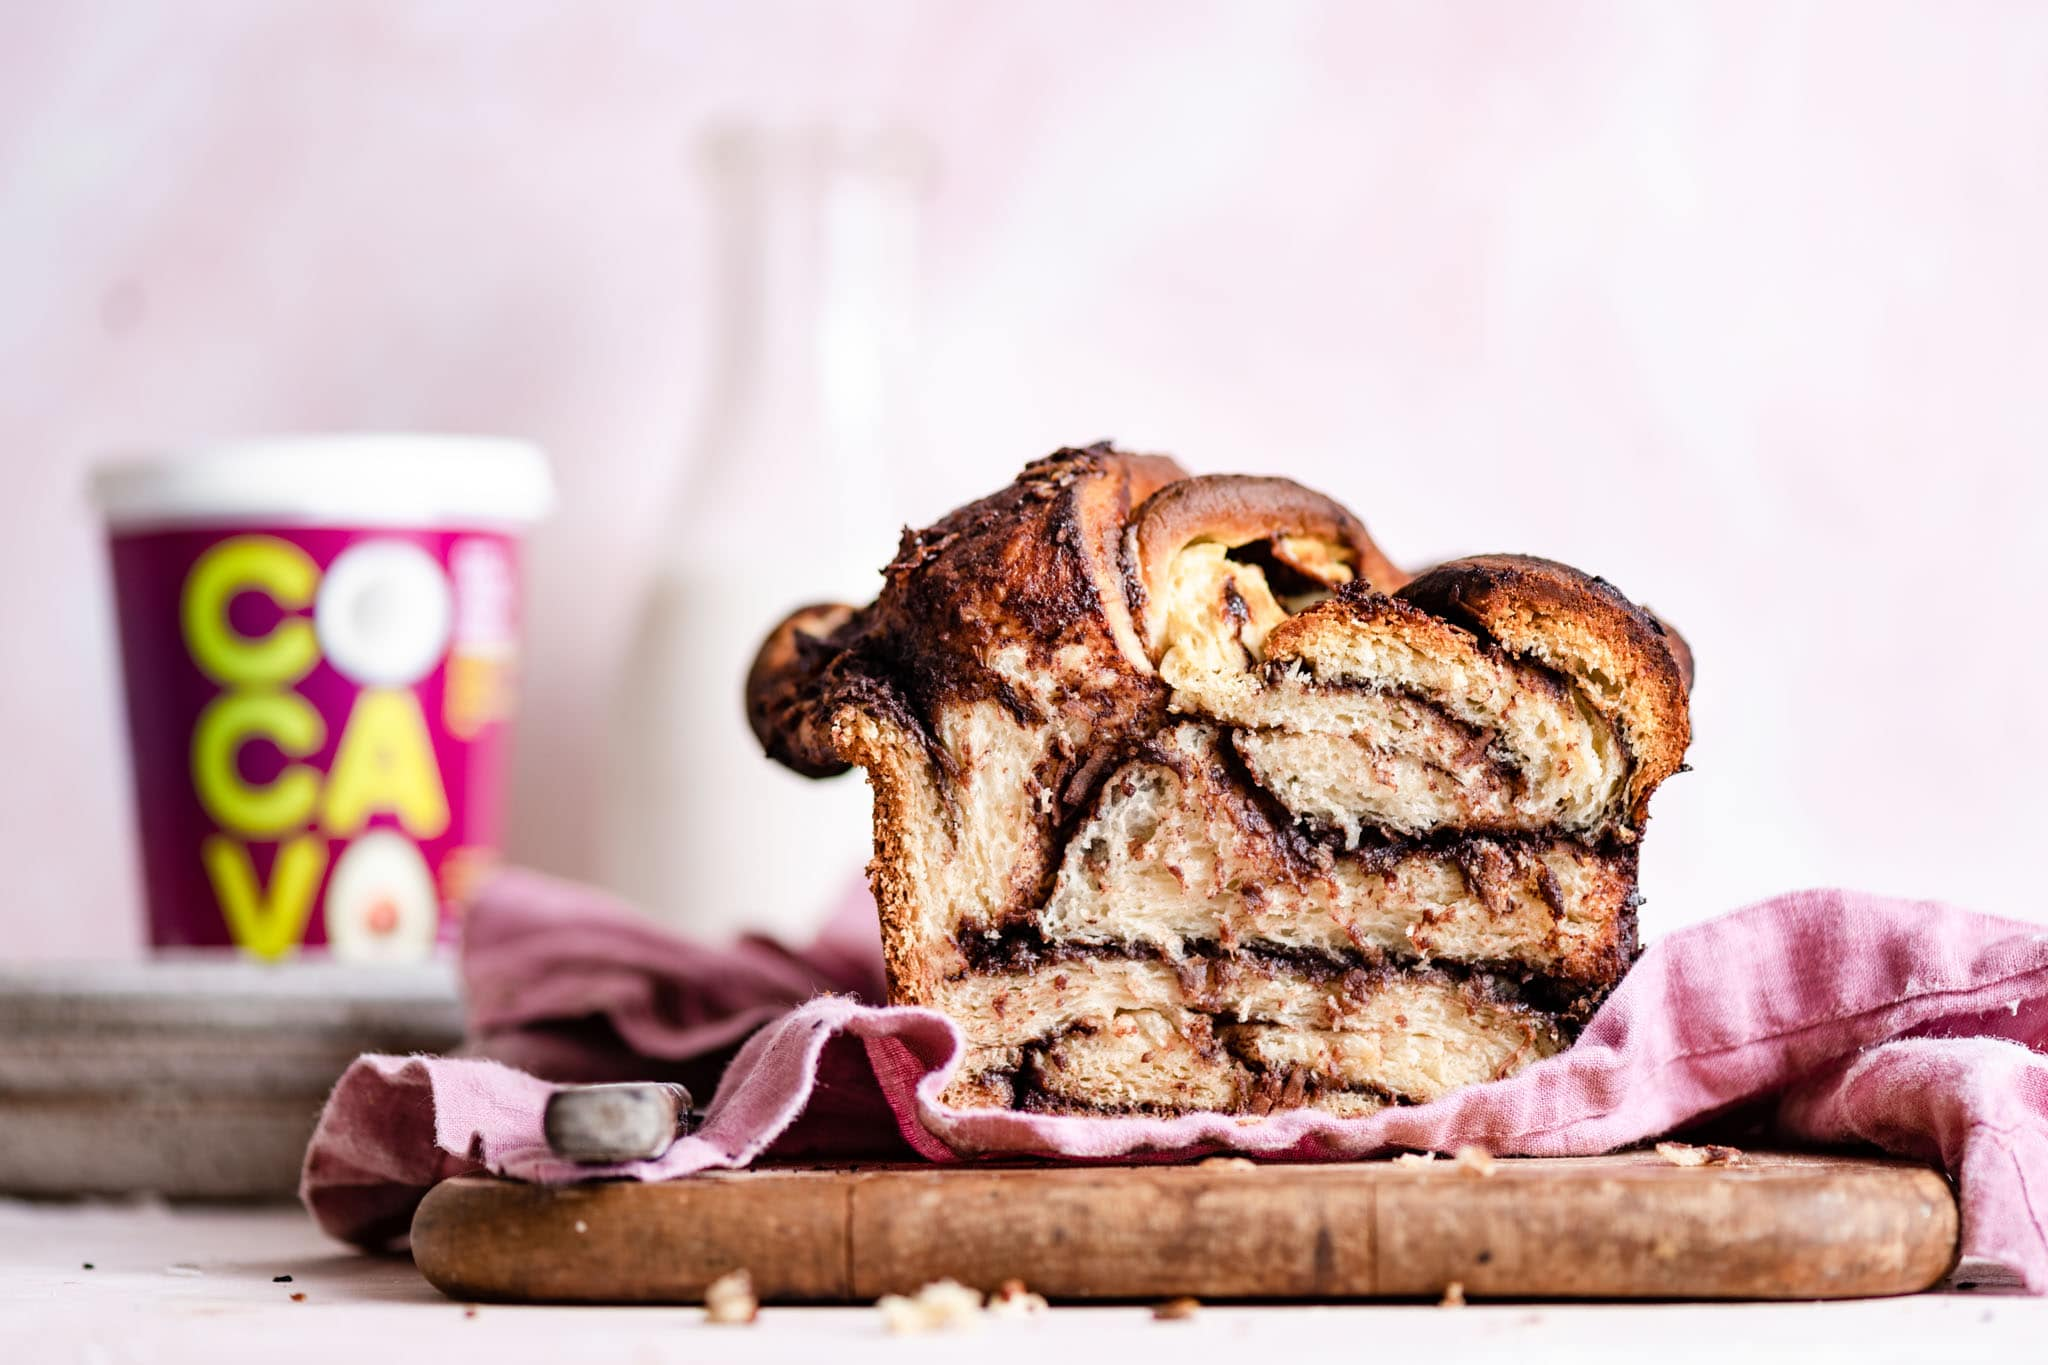 Cocavo Coconut Chocolate Babka Bread